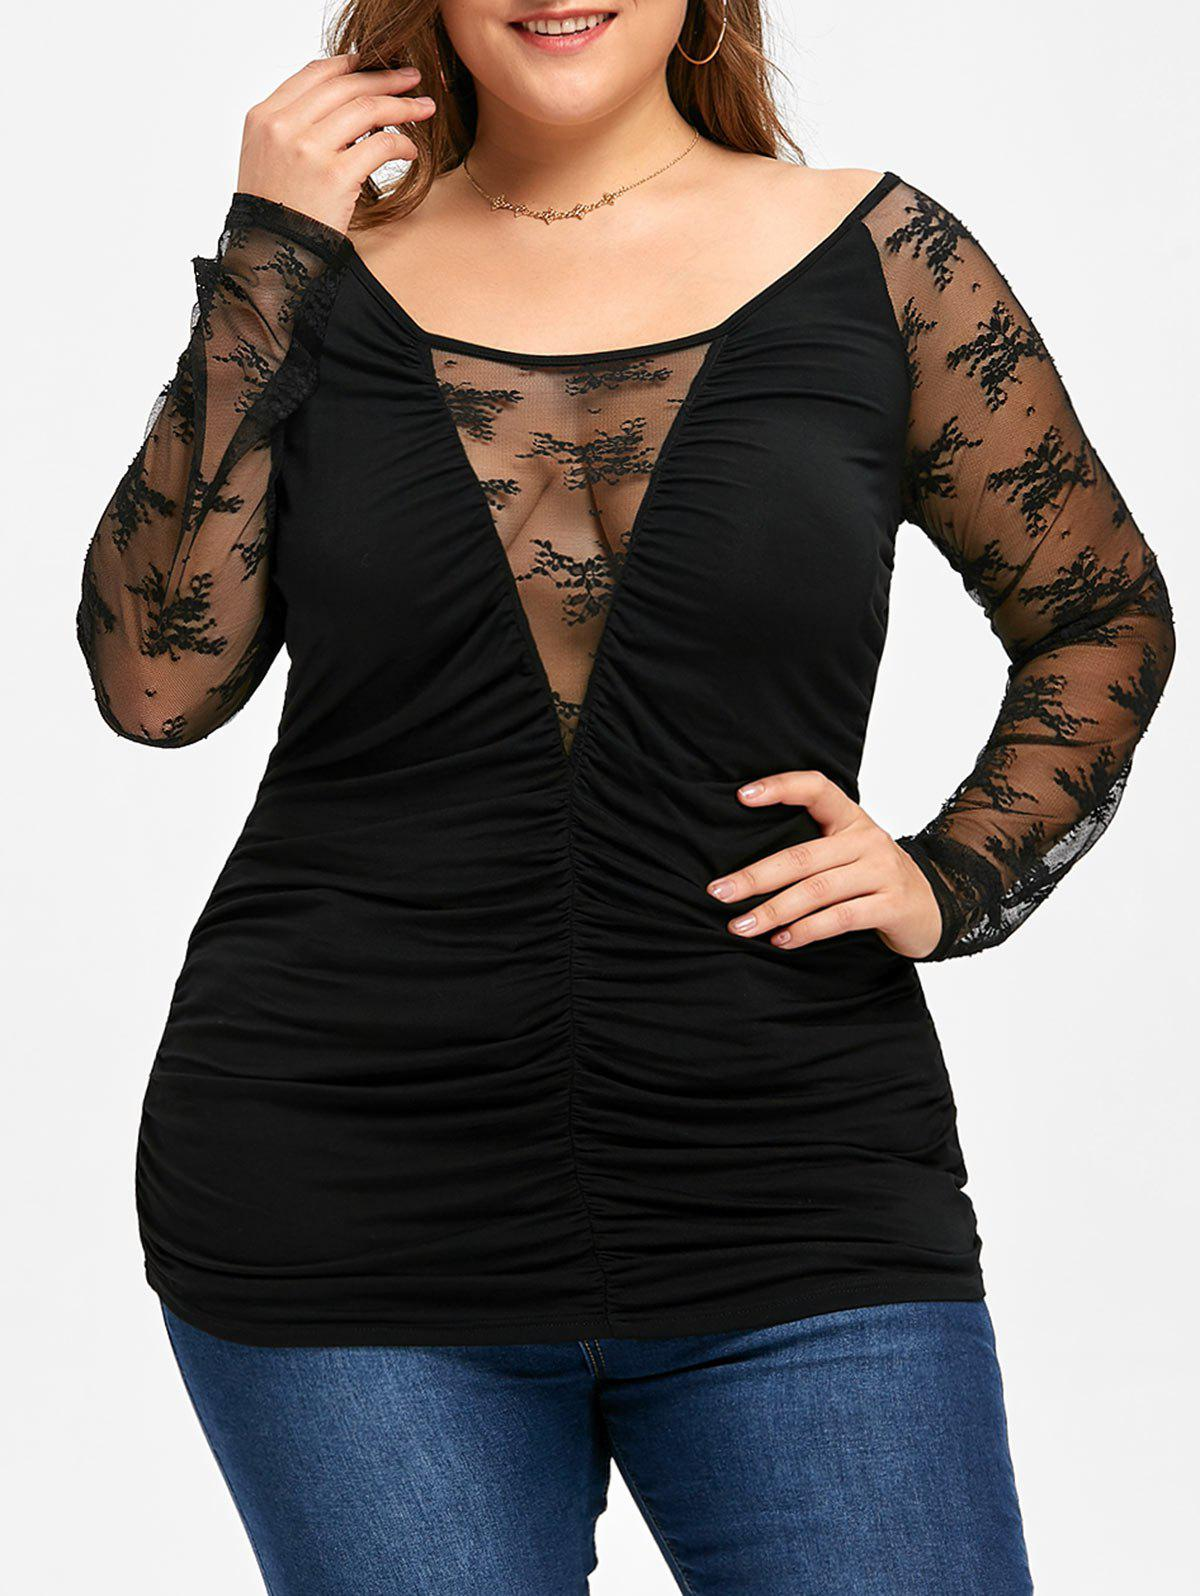 Plus Size Sheer Lace Trim Ruched Top plus size sheer lace trim ruched top